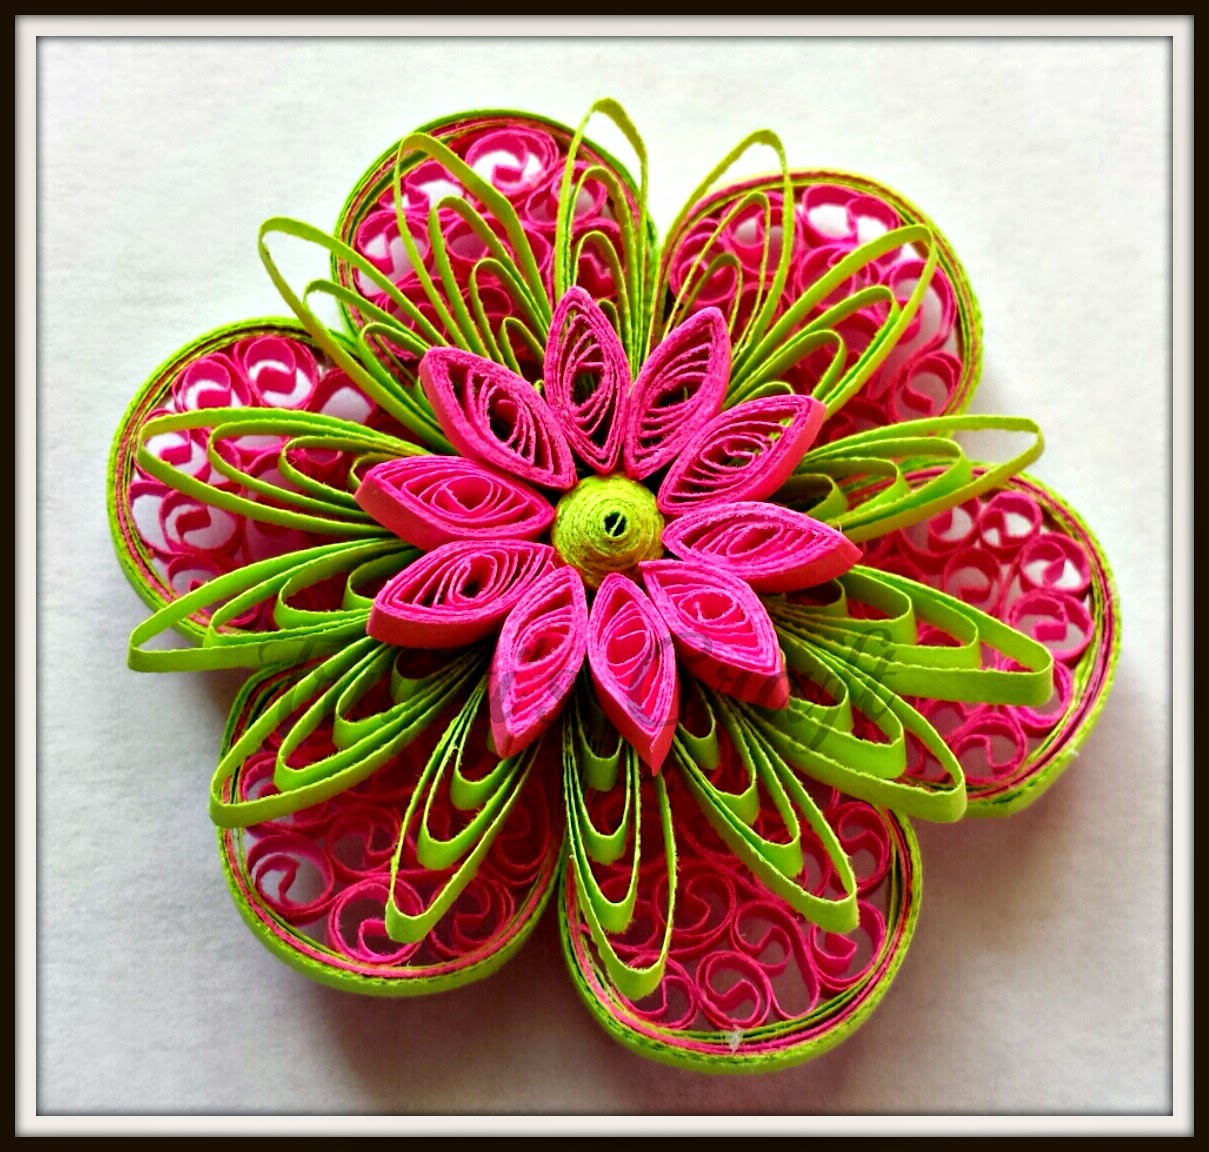 Truptis craft paper quilling flowers each paper quilling product is hand varnished to make it sturdy durable and water resistant if you want to buy anything or need mightylinksfo